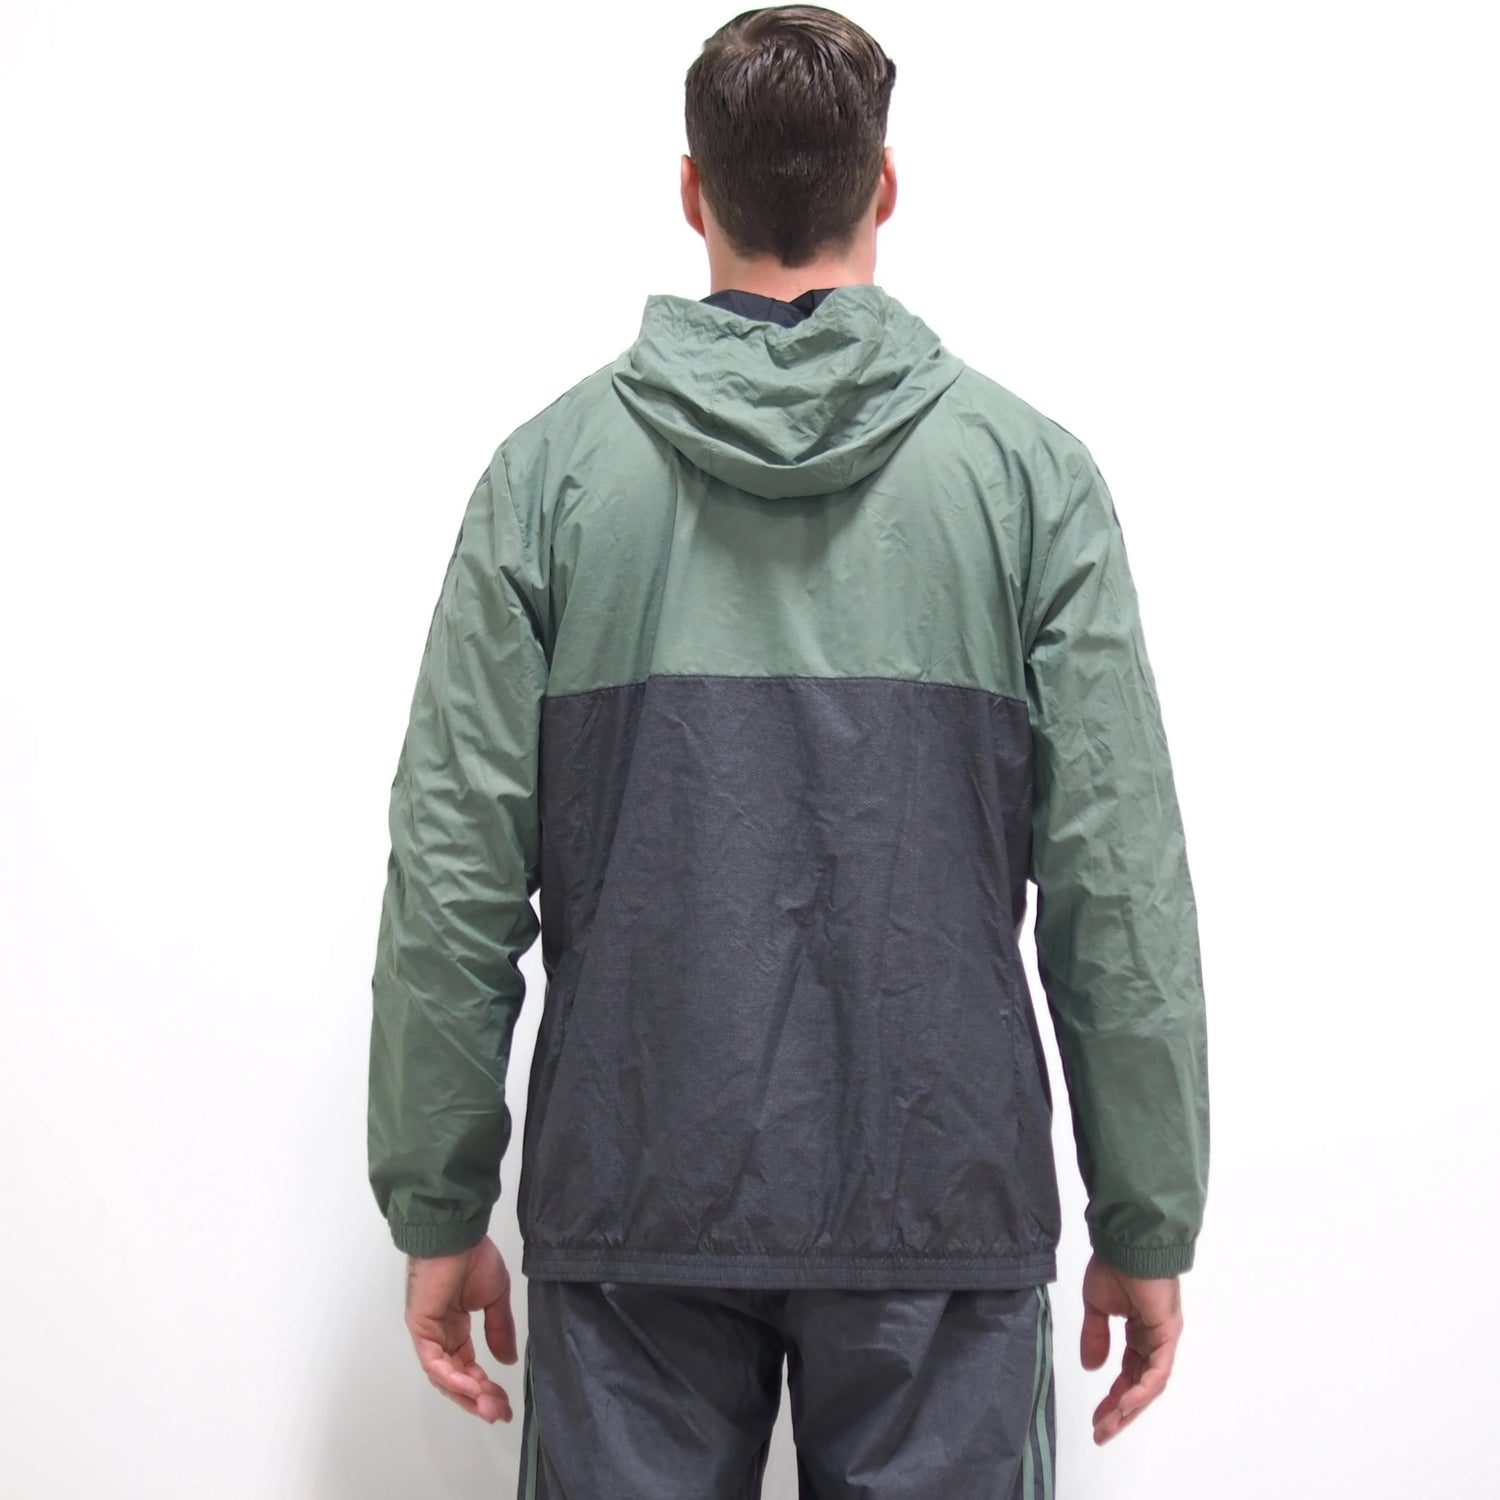 ESS WOVEN JACKET